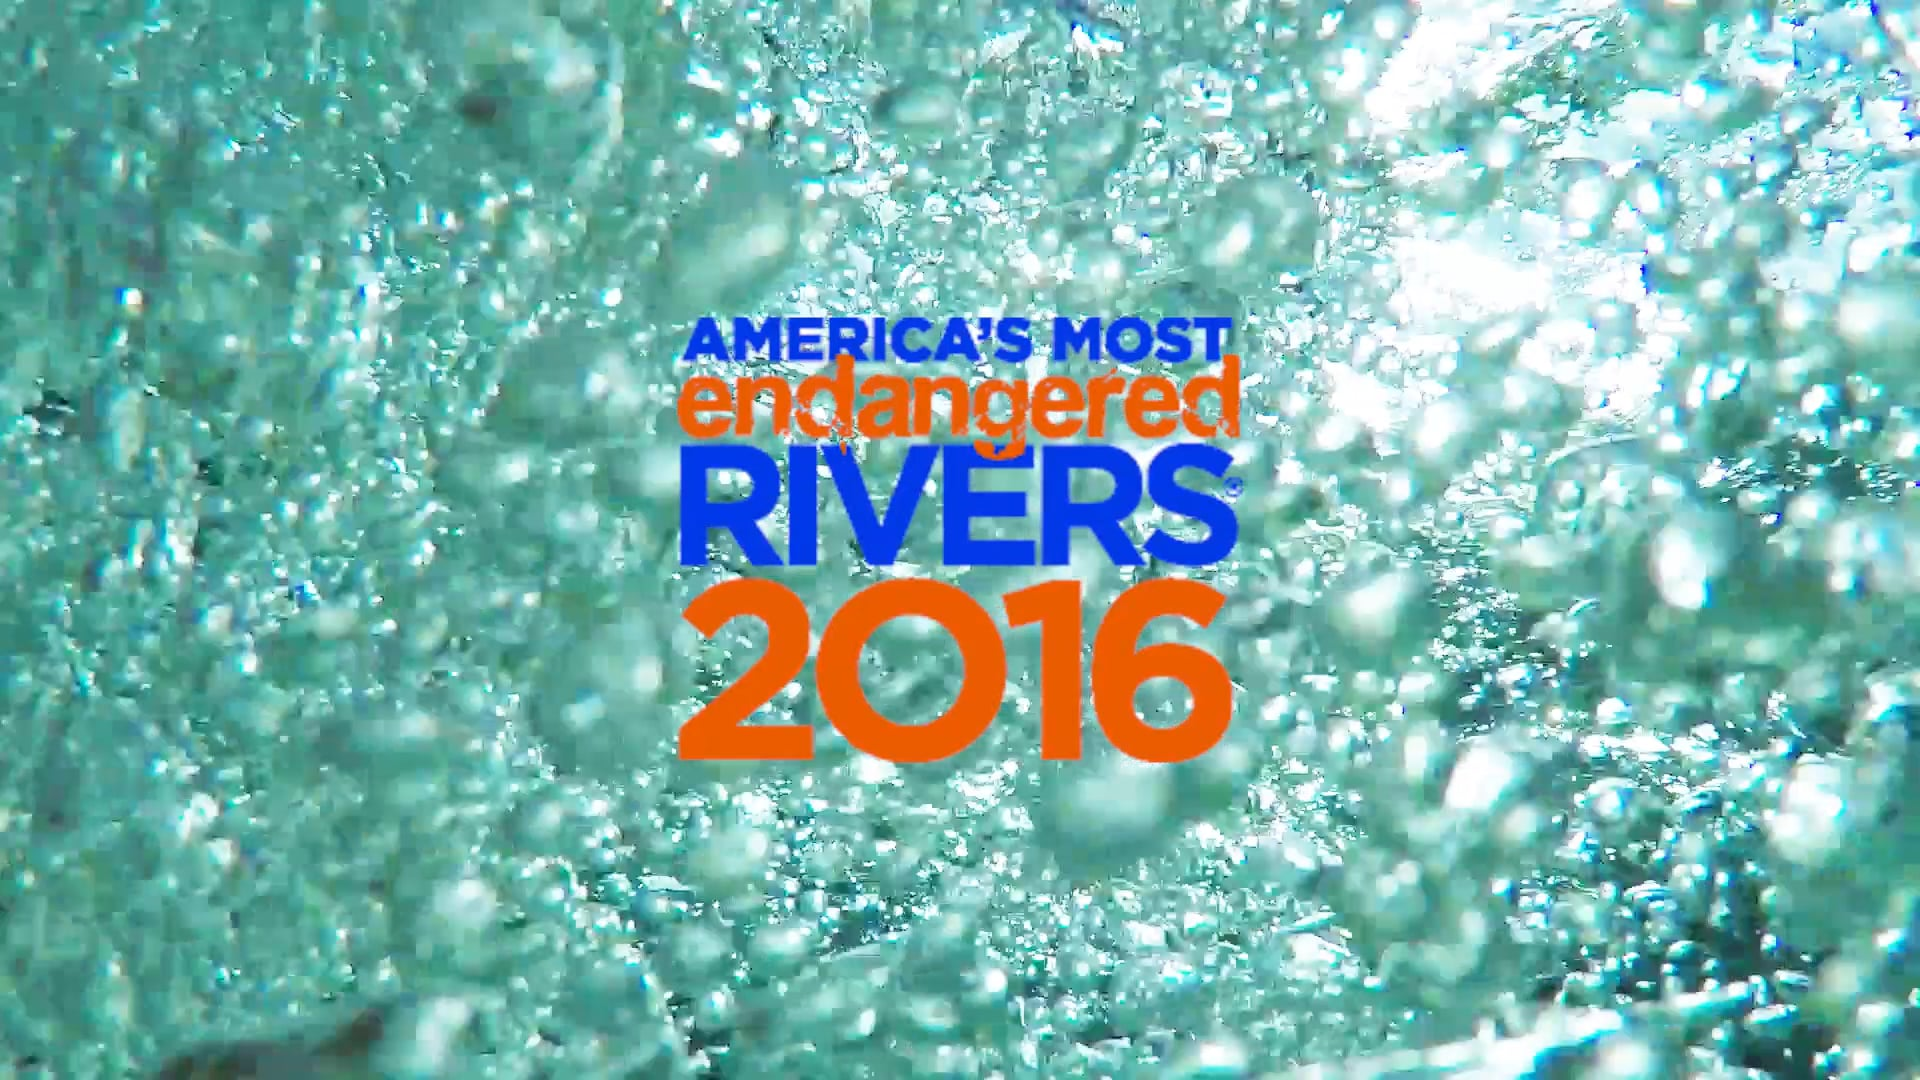 2016 MOST ENDANGERED RIVERS